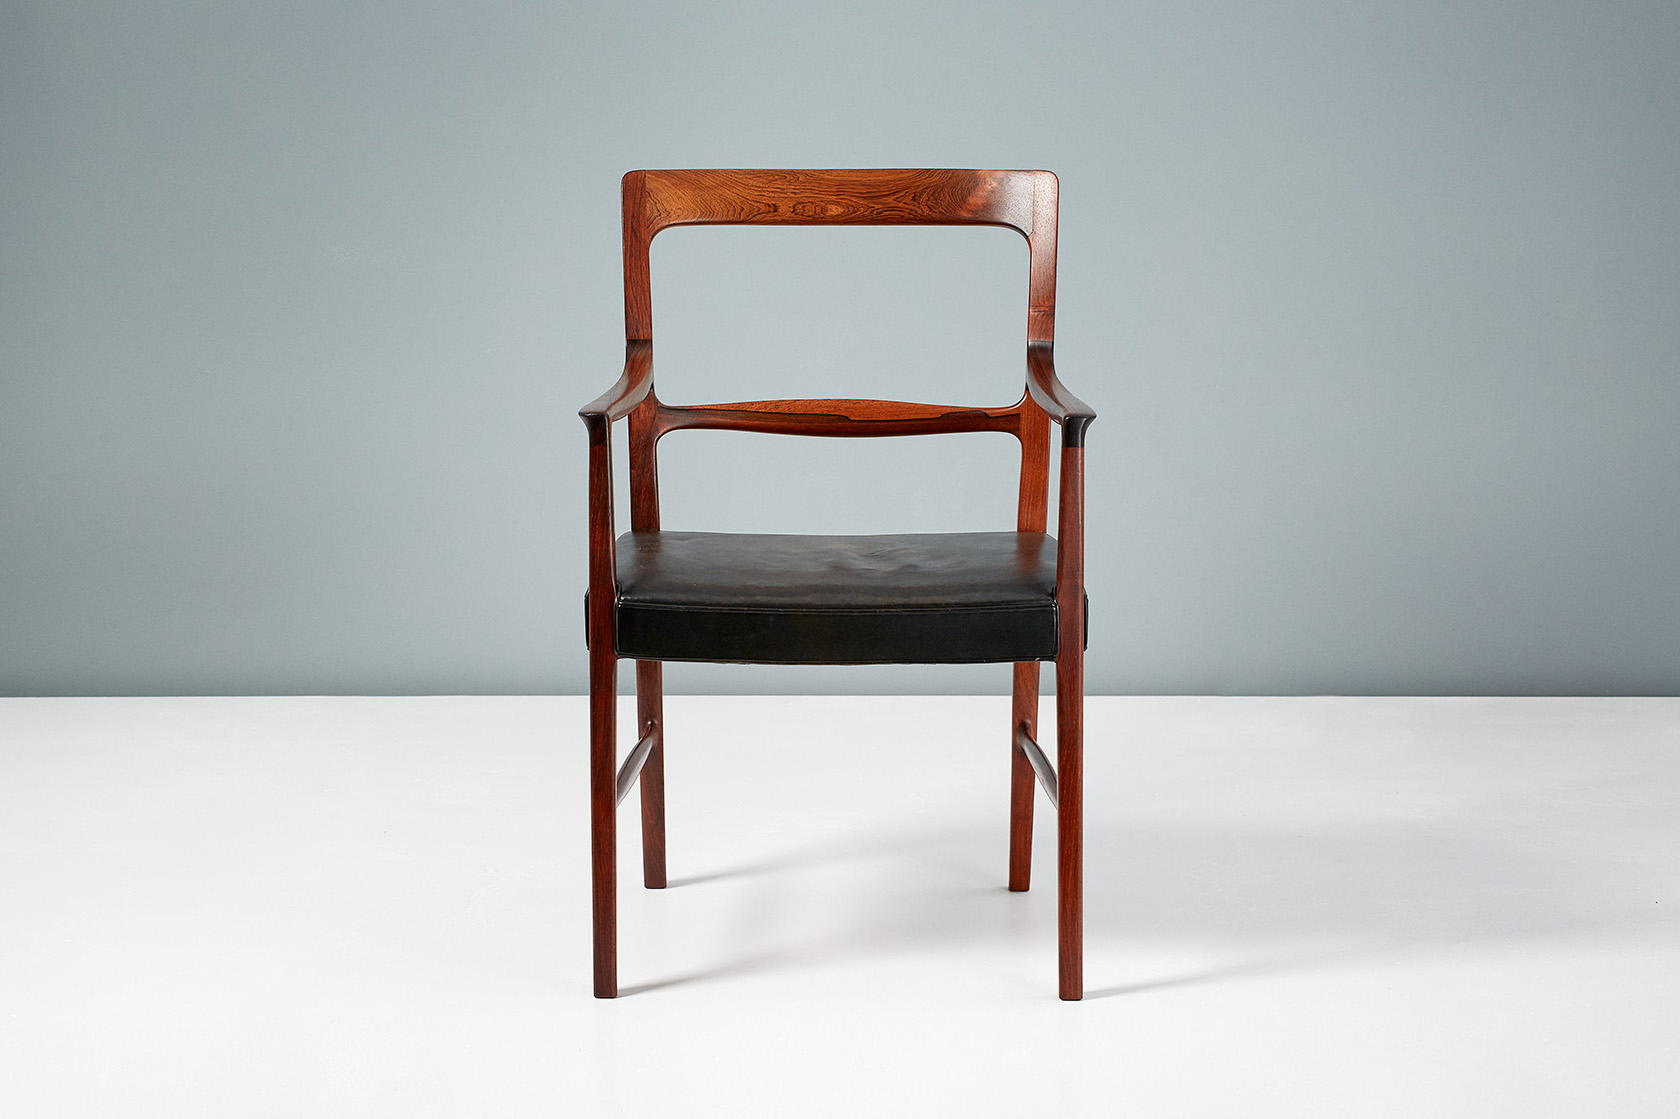 Ole Wansche r 1954 Armchair, Rosewood